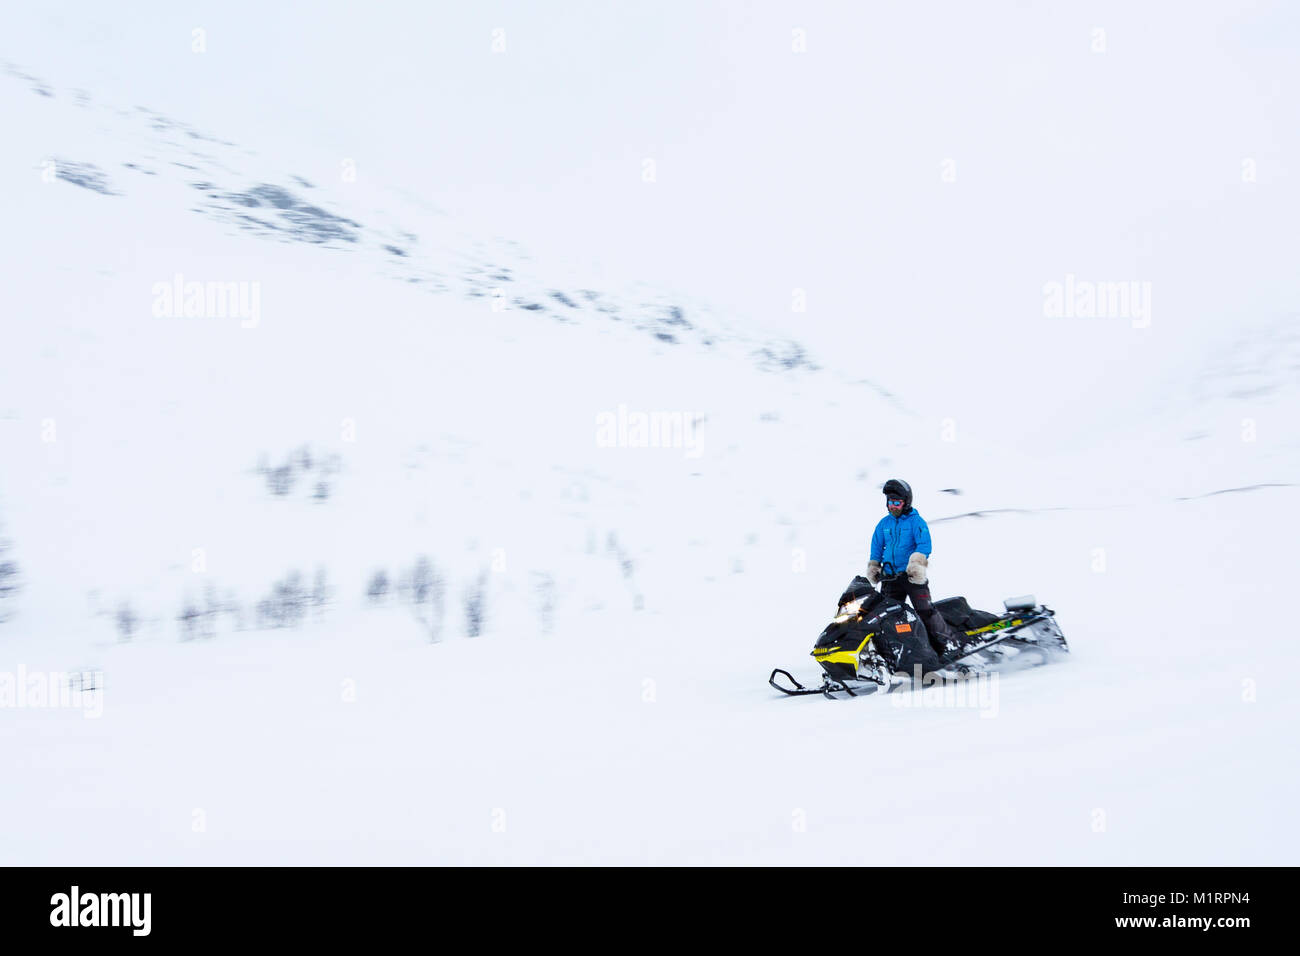 Skibotn, Norway. Guide Thomas driving snowmobile. - Stock Image